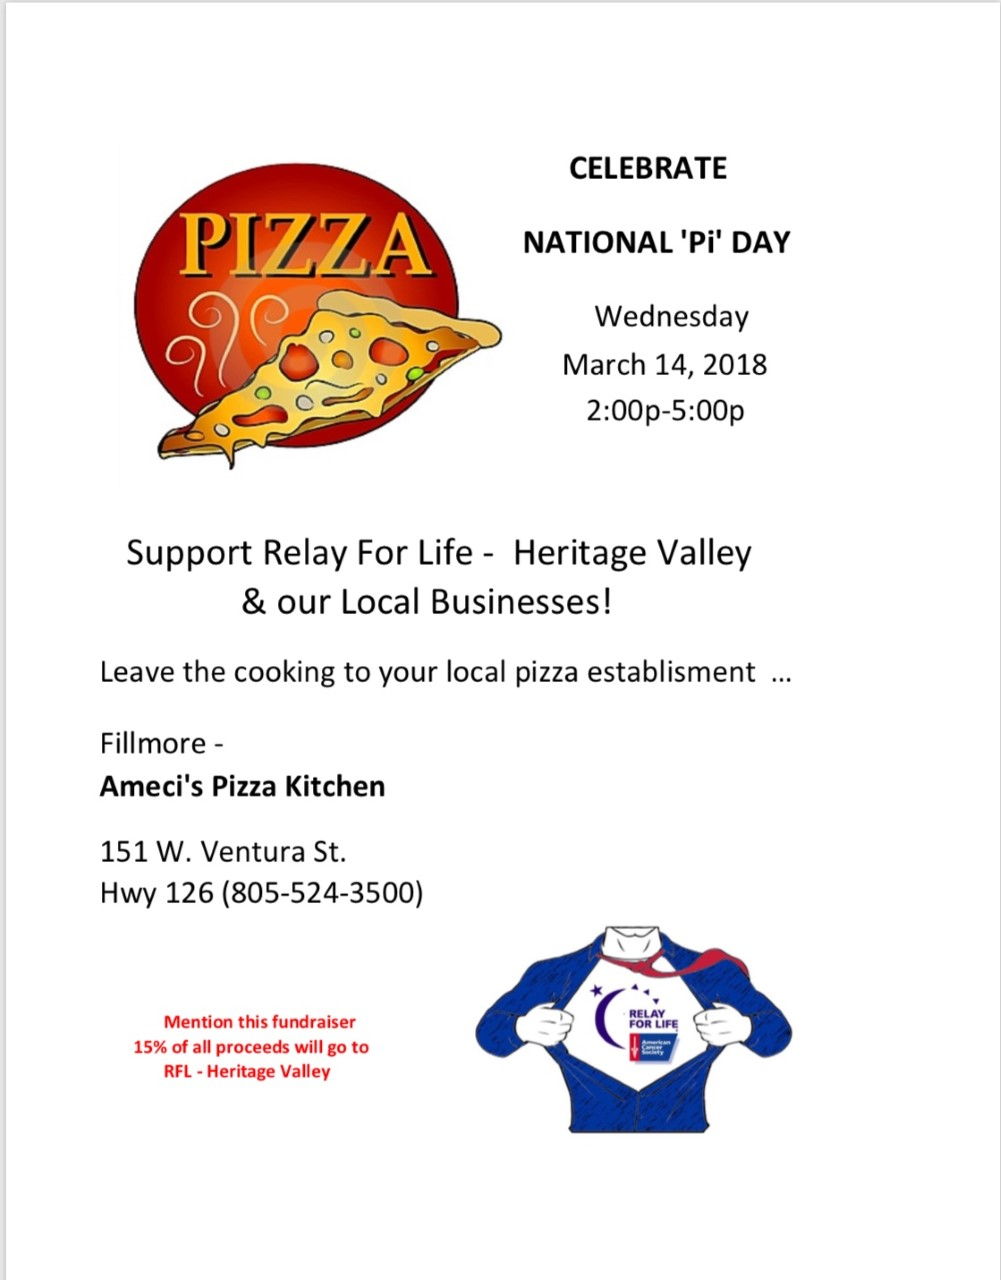 Amecia National Pizza Pi Day Wed March 14, 2018.jpg